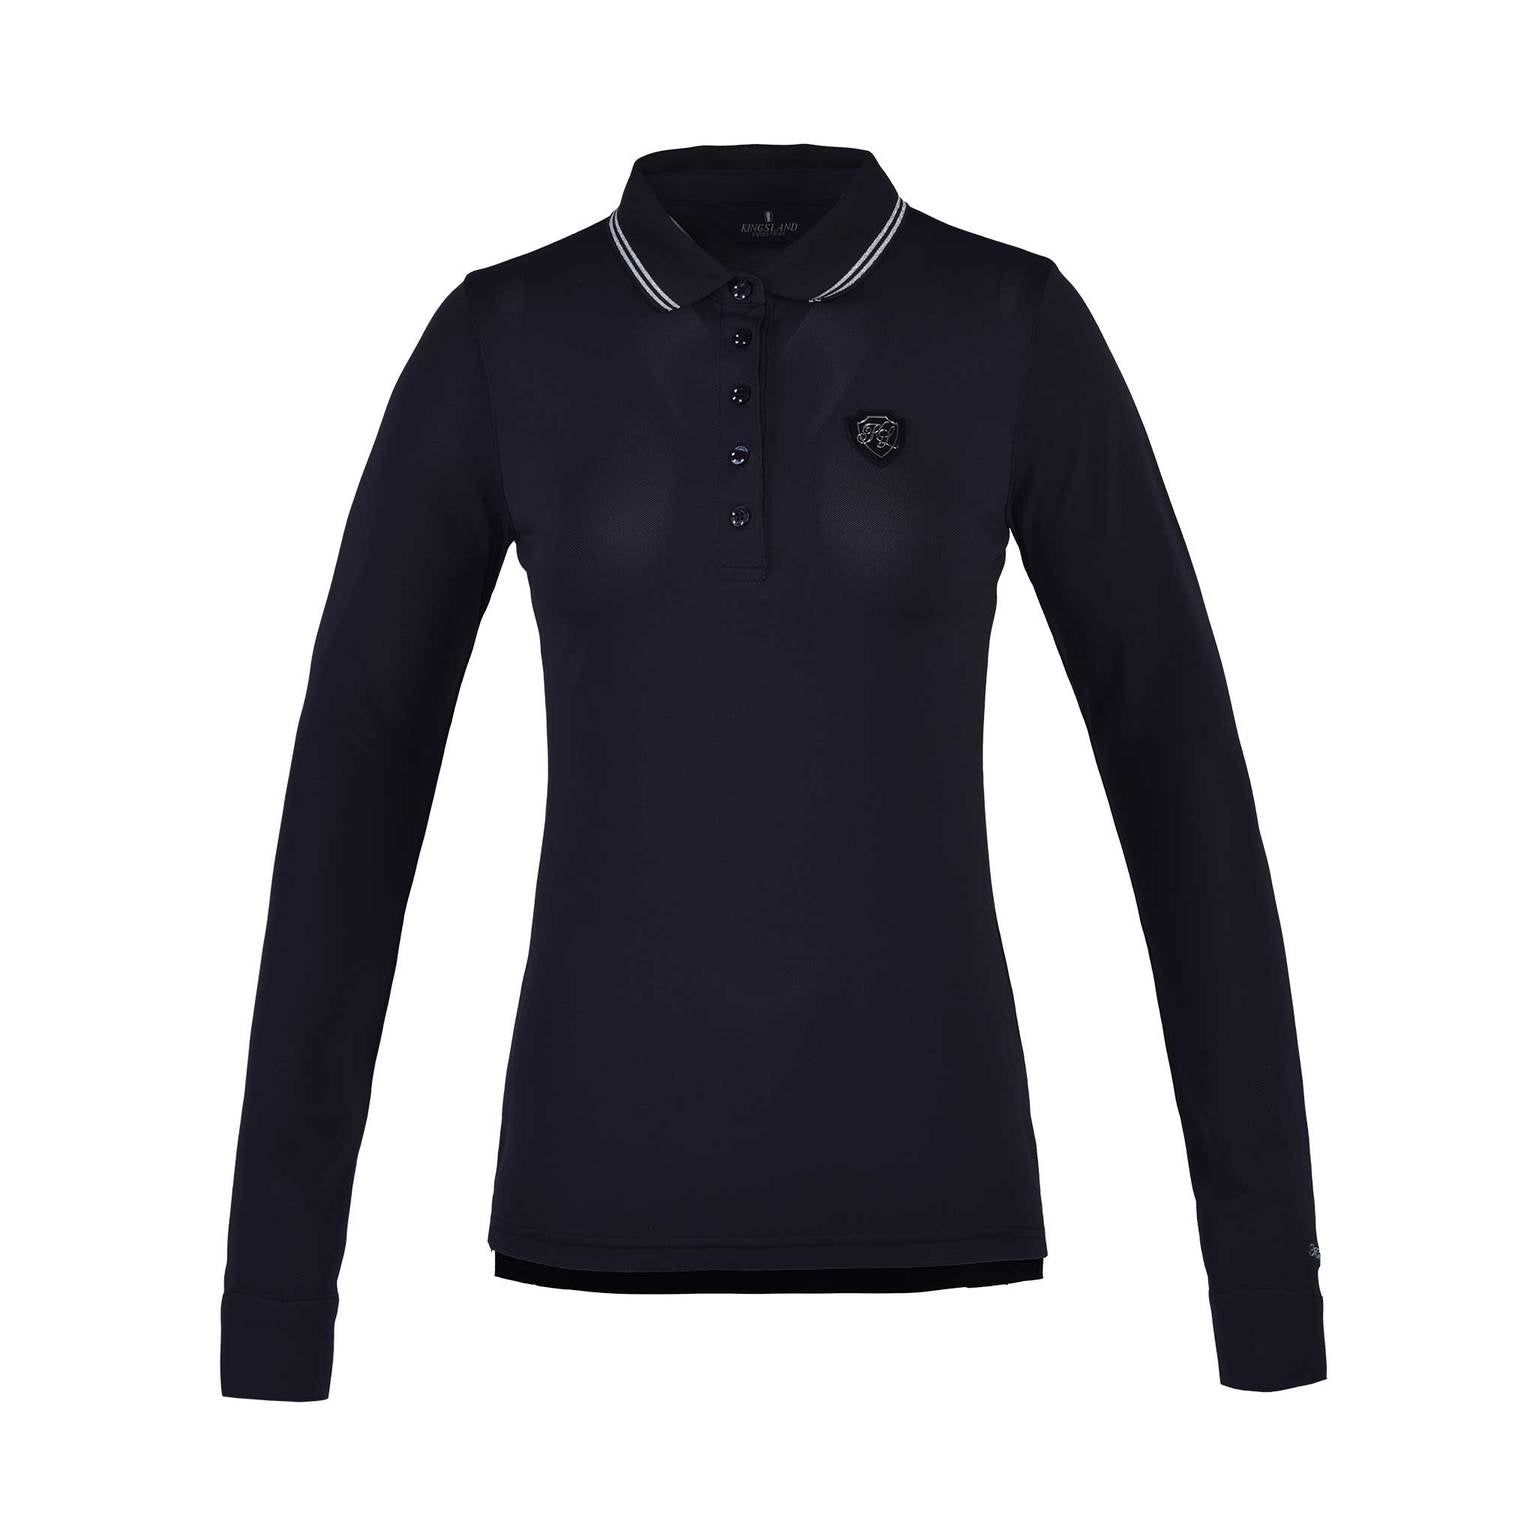 Kingsland Chambly Ladies' Pique Polo Shirt